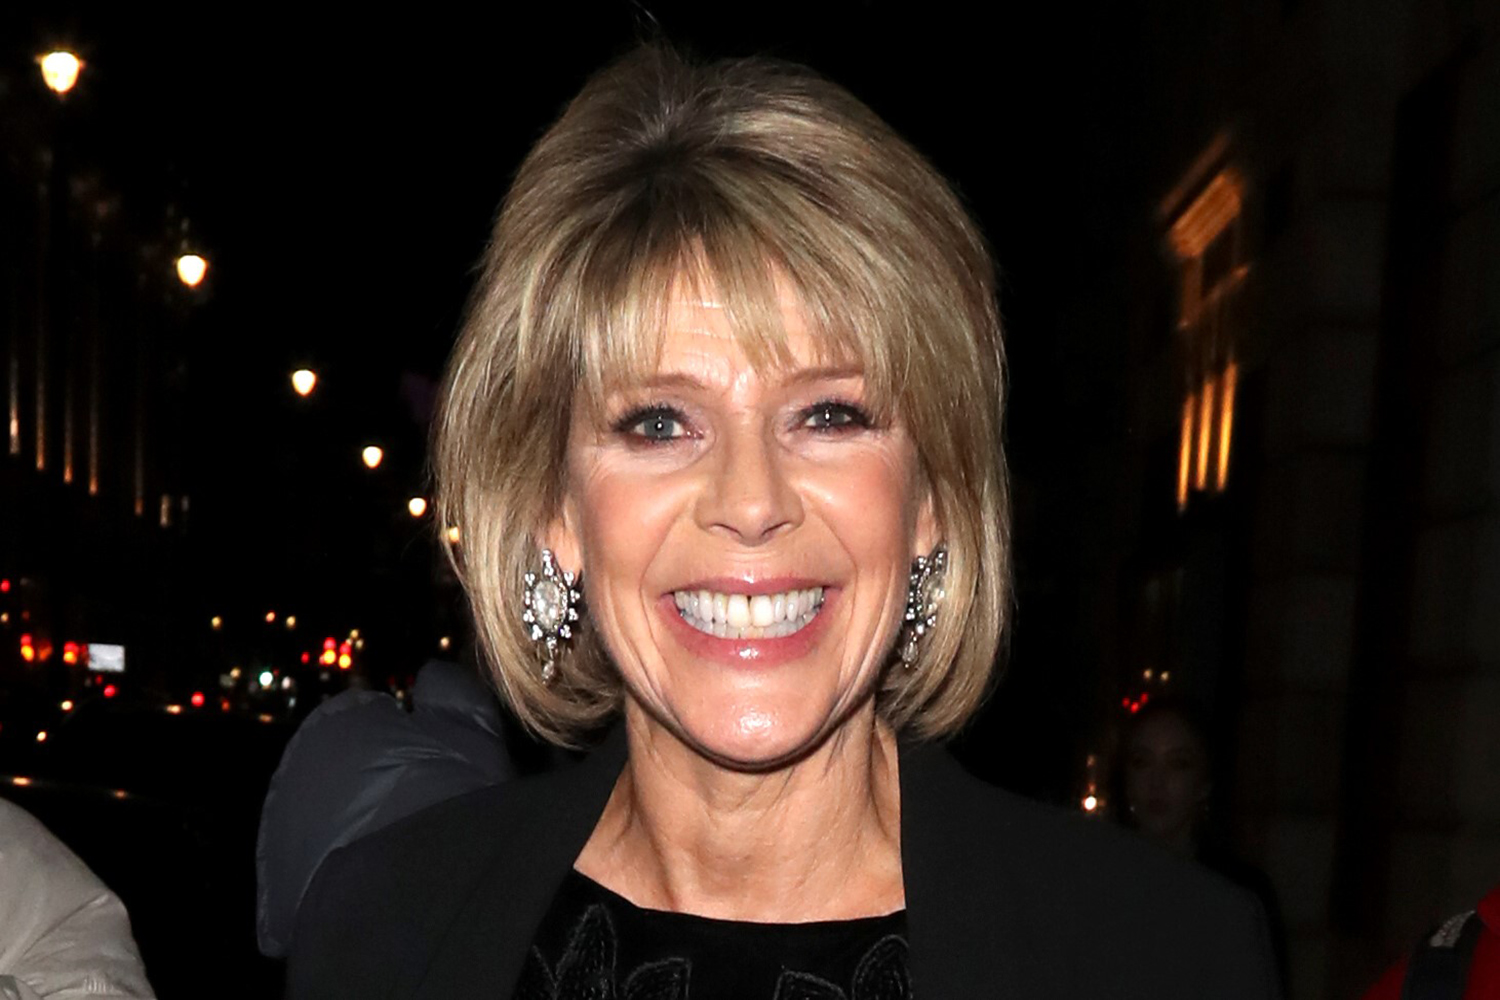 Ruth Langsford waves to elderly mum through window during heartbreaking walk